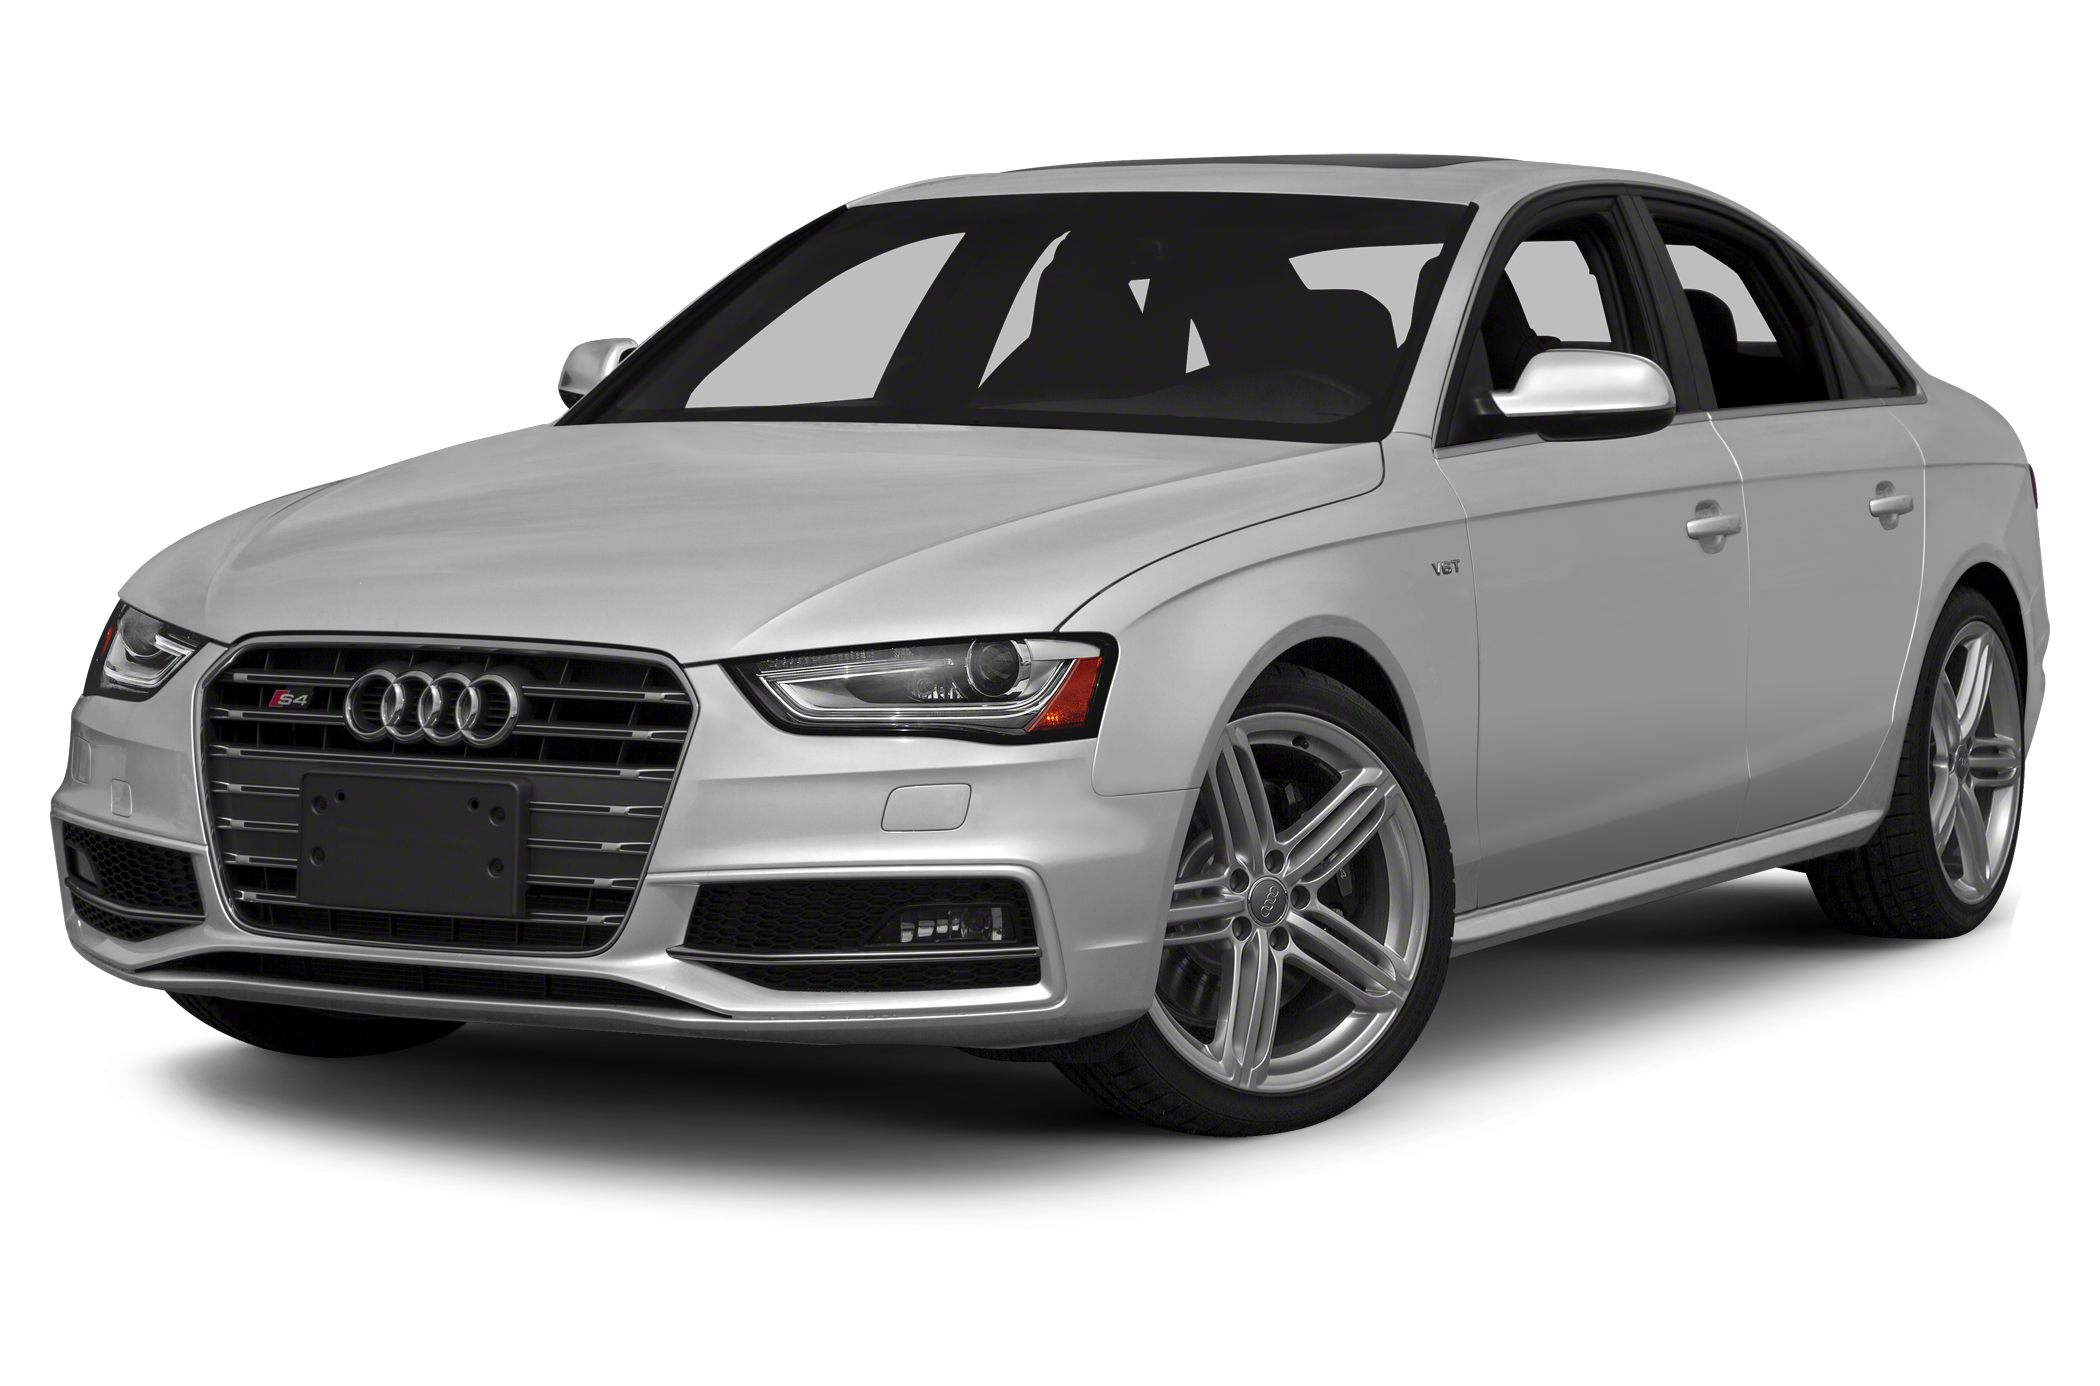 2014 Audi S4 3.0T Premium Plus Sedan for sale in Owings Mills for $54,995 with 30 miles.